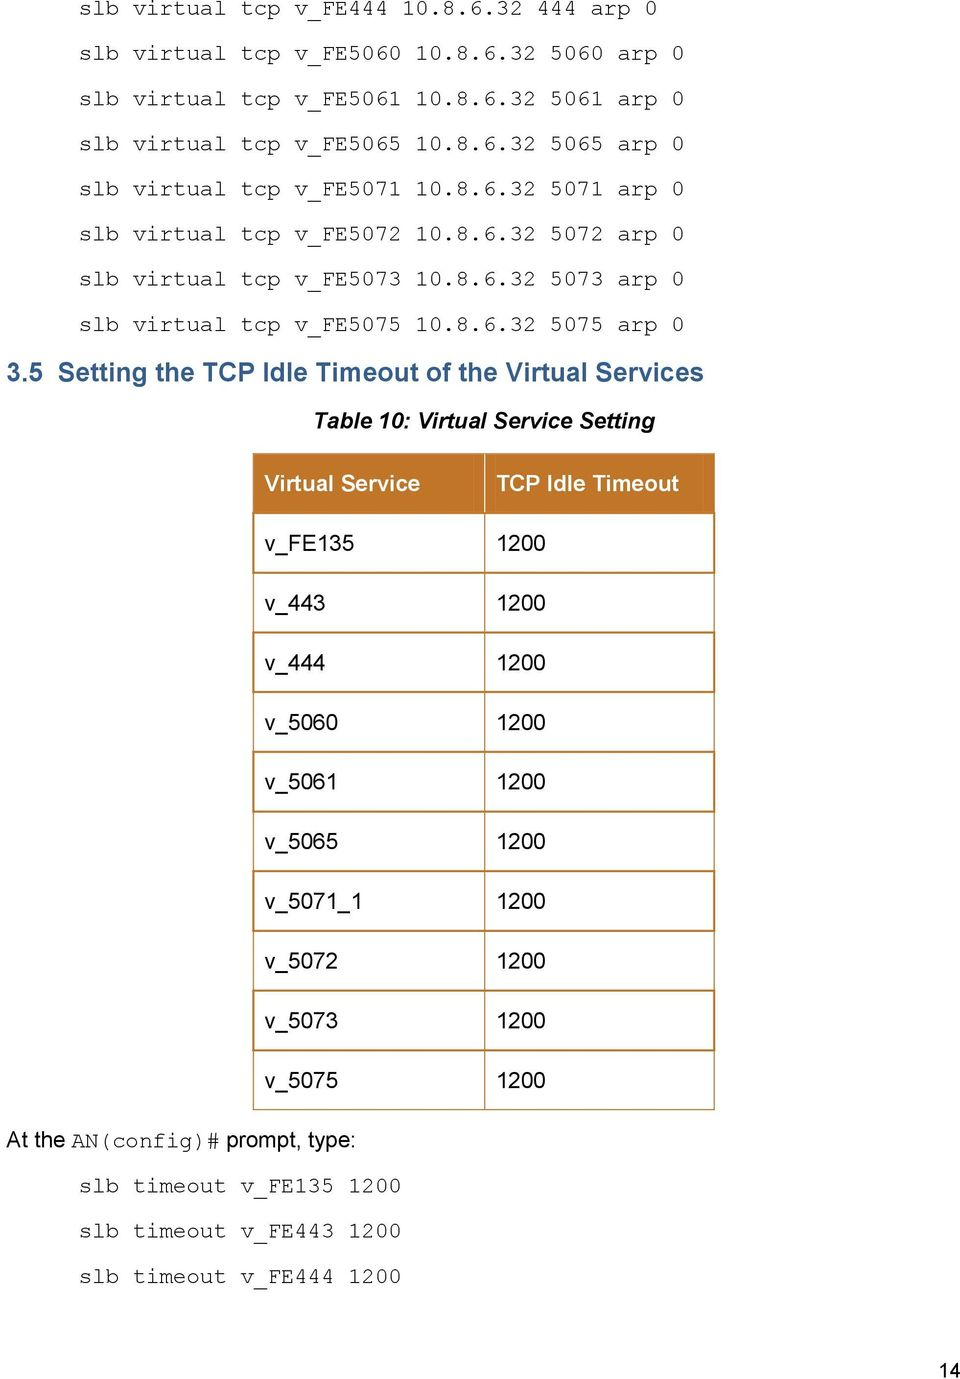 5 Setting the TCP Idle Timeout of the Virtual Services Table 10: Virtual Service Setting Virtual Service TCP Idle Timeout v_fe135 1200 v_443 1200 v_444 1200 v_5060 1200